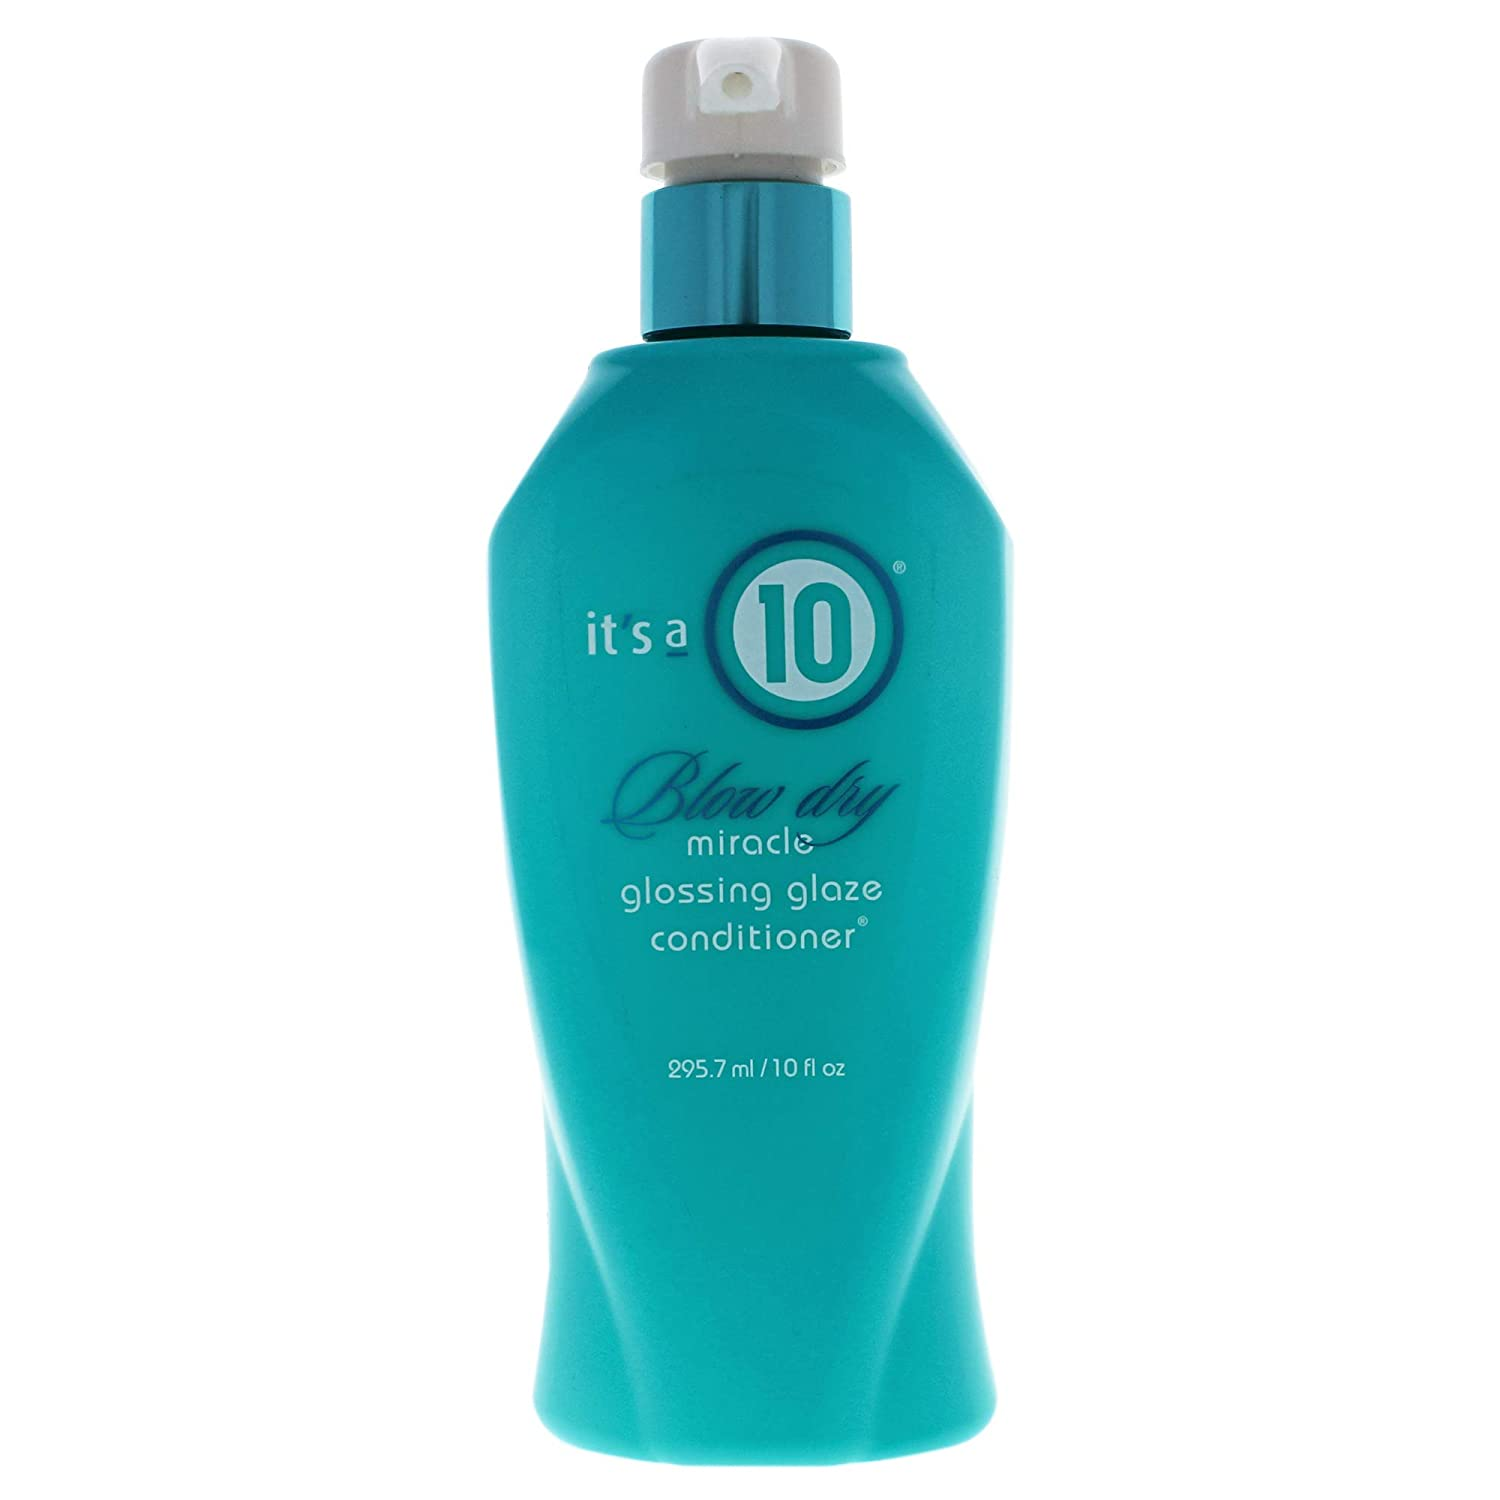 It's A 10 Blow Dry Miracle Glossing Glaze Conditioner, 10 Ounce